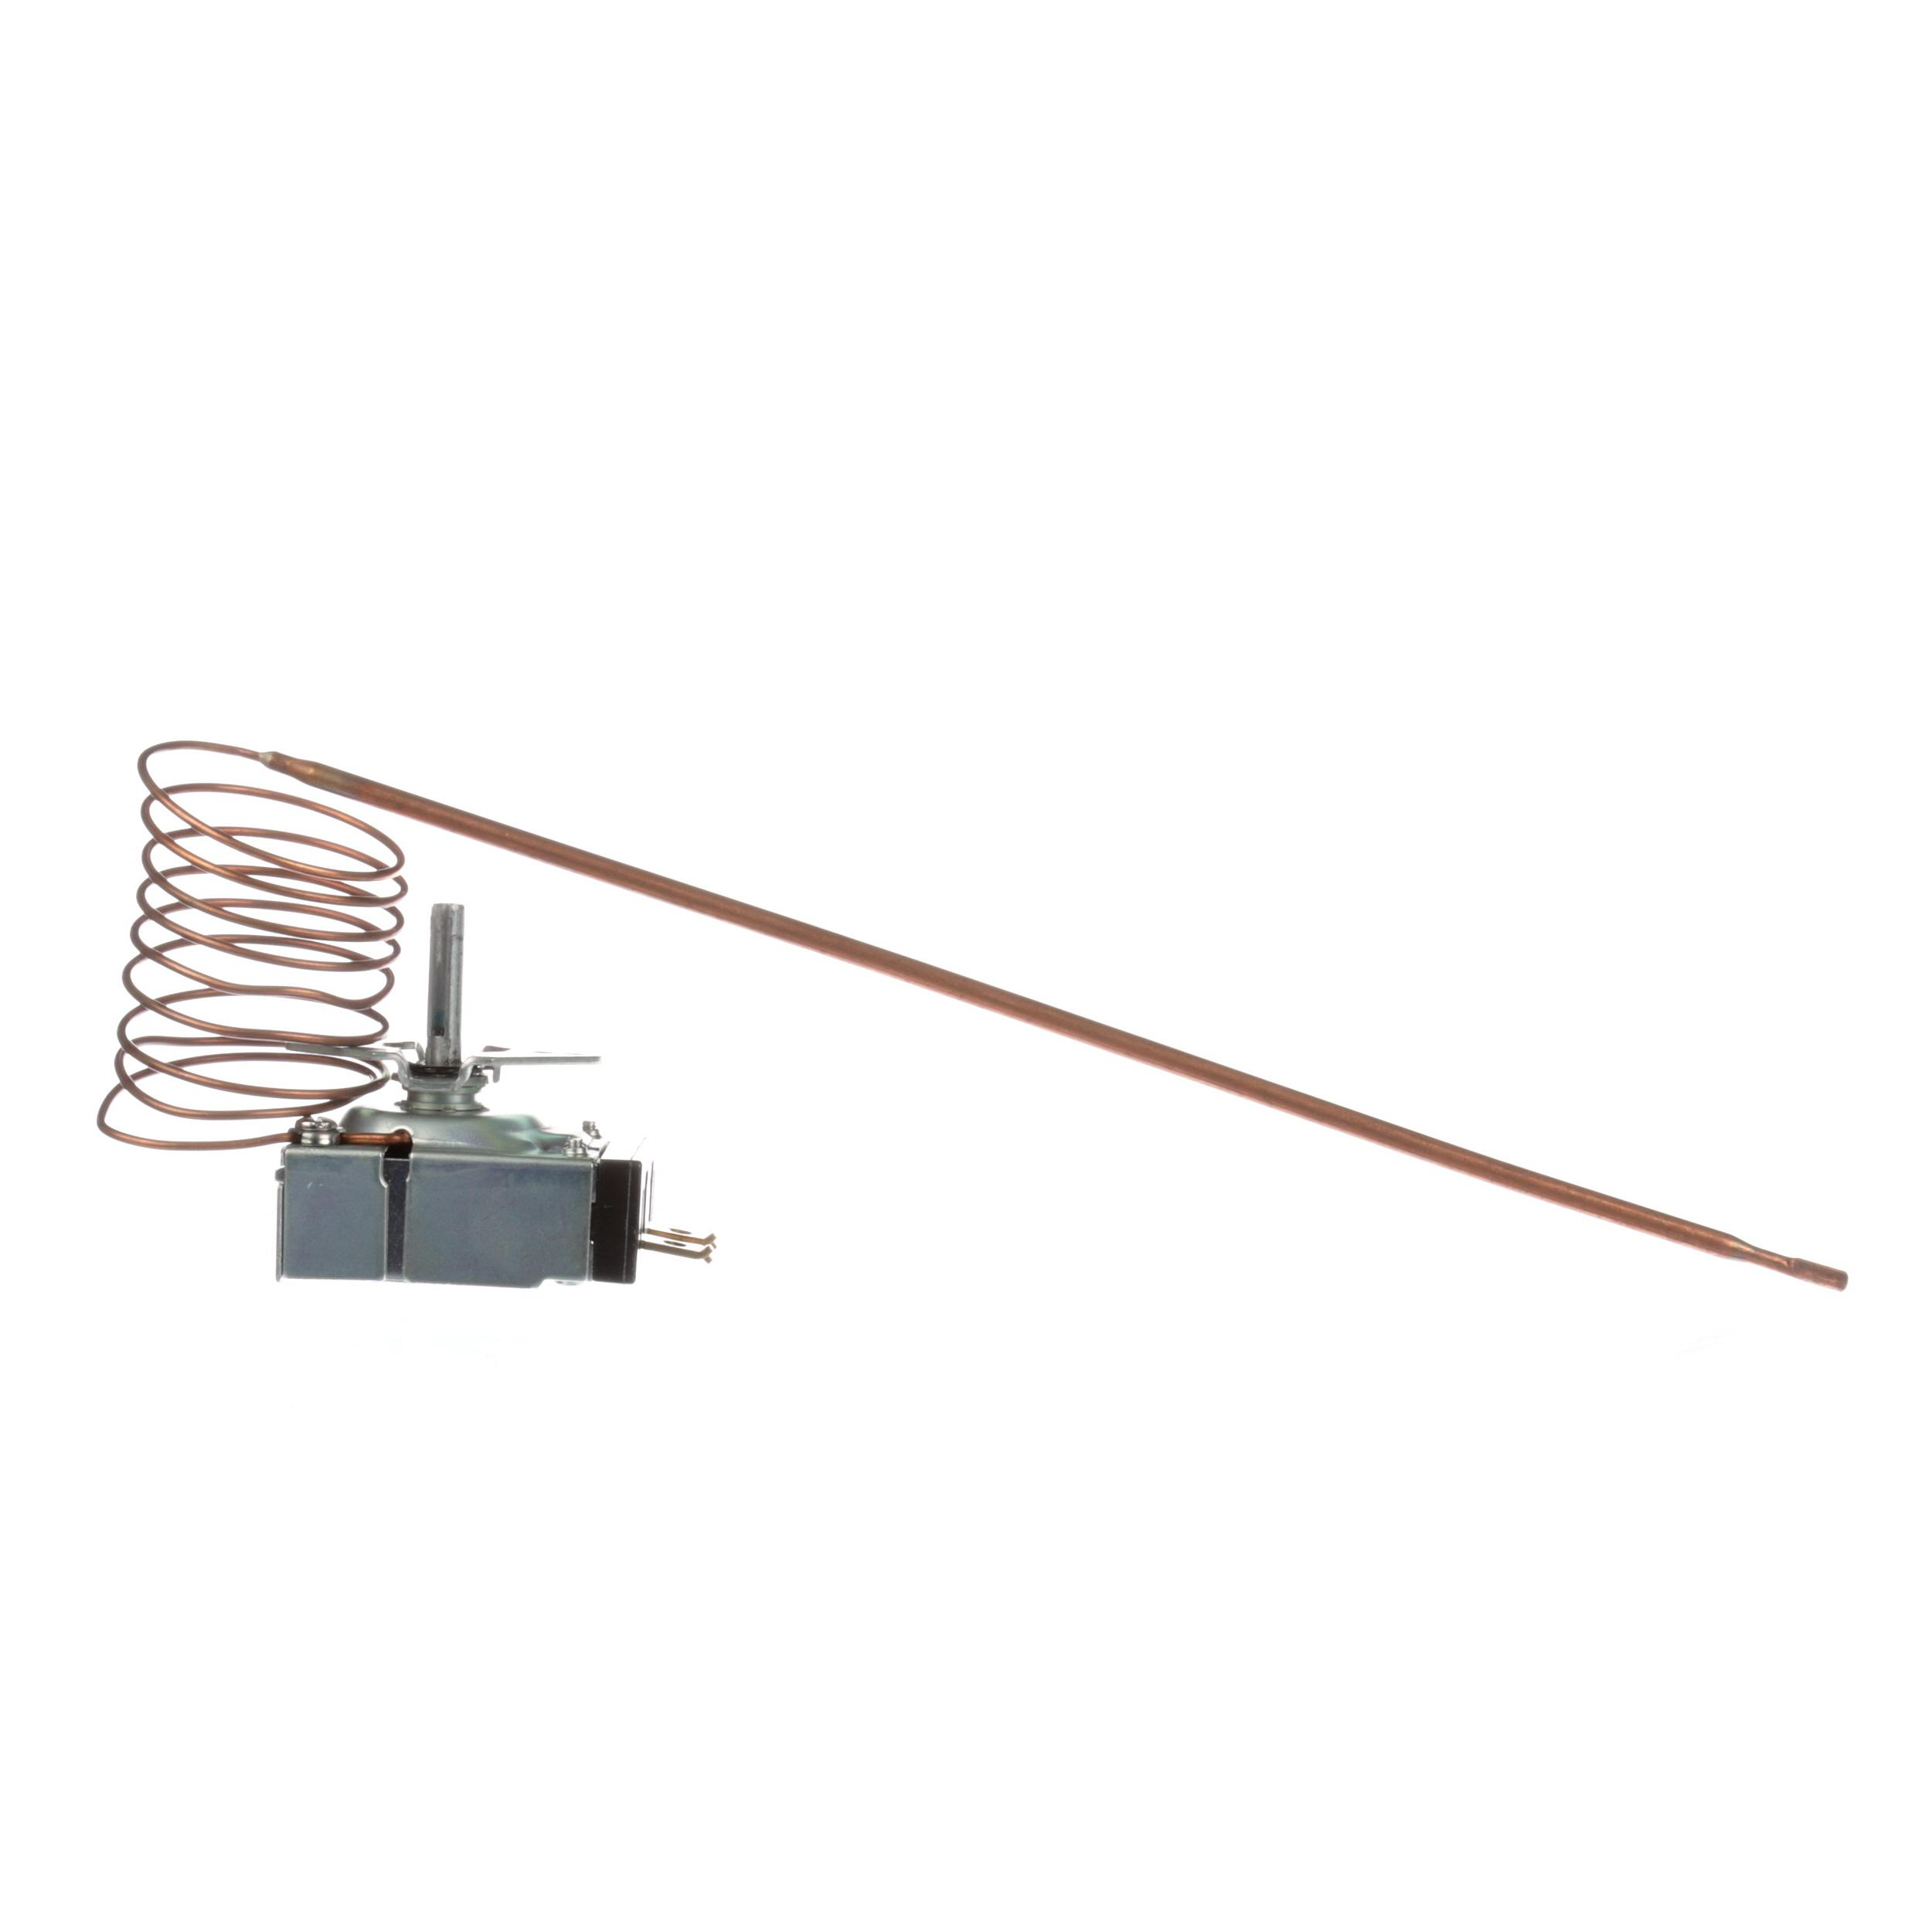 SOUTHBEND GRIDDLE THERMOSTAT